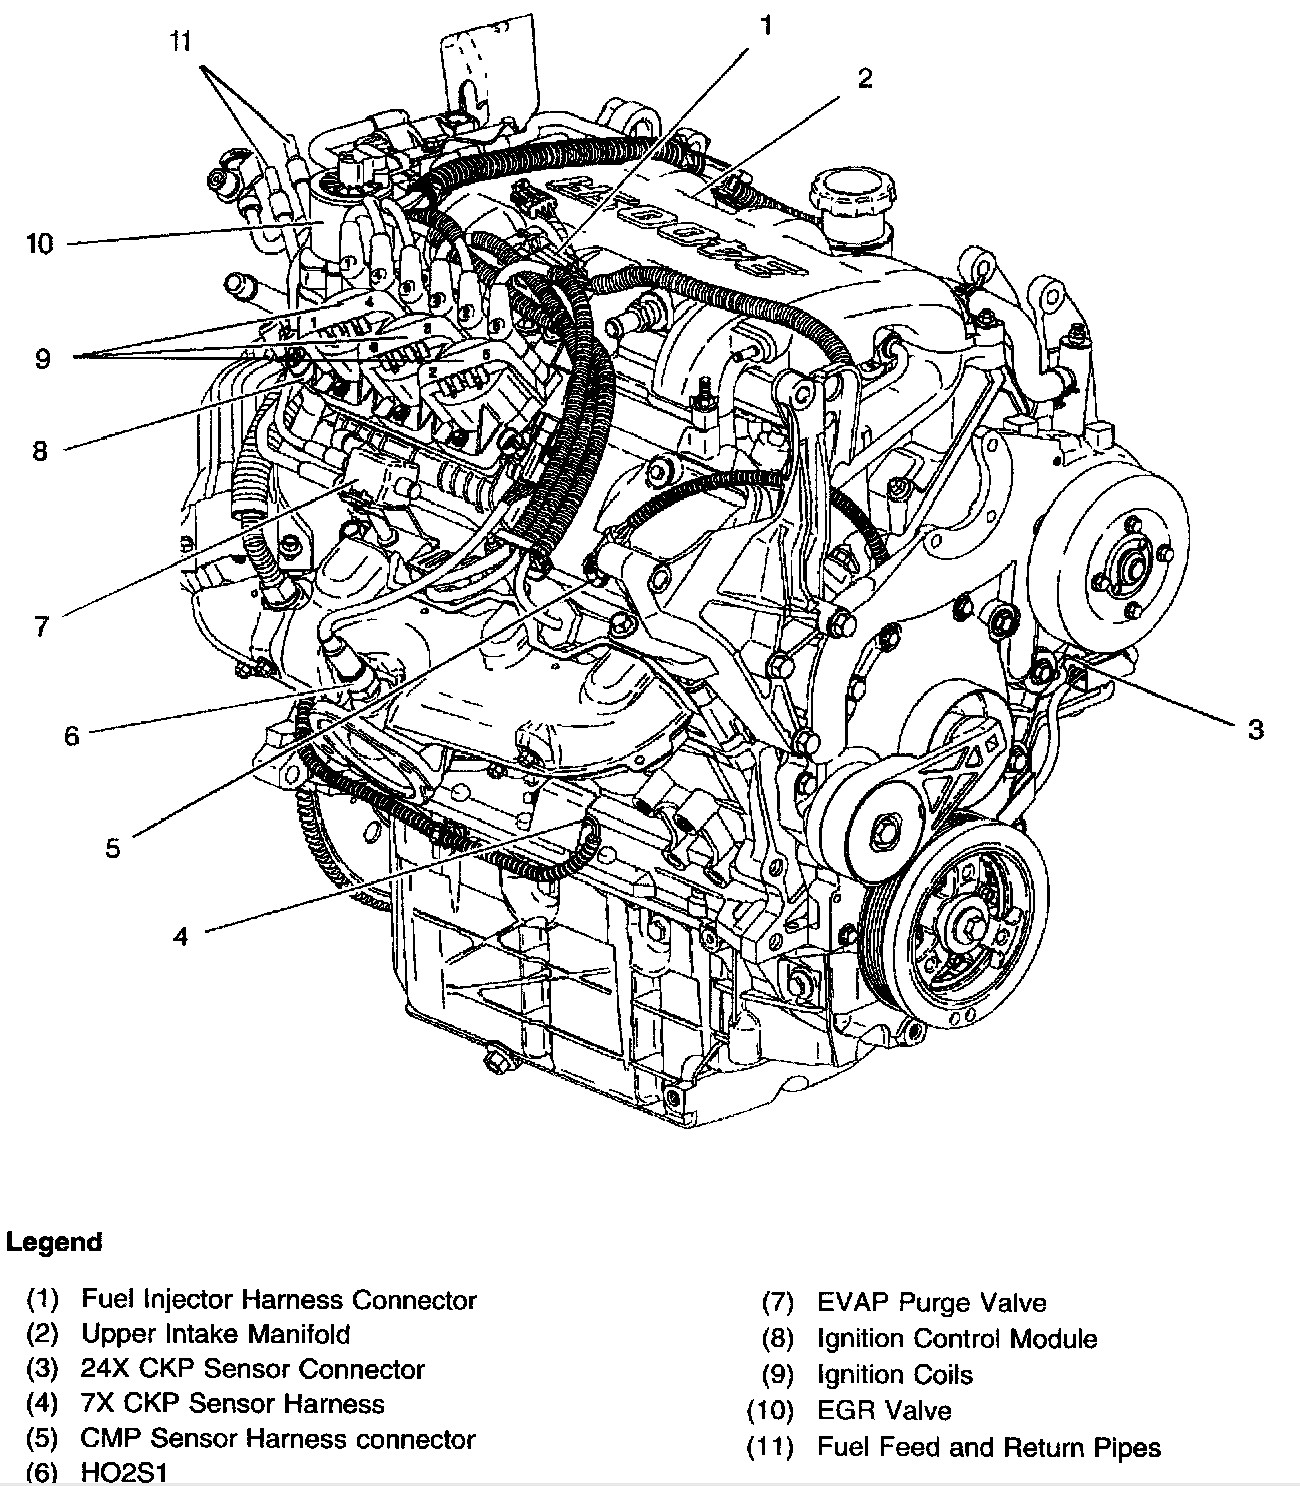 Diagram 3800 Pontiac Engine Change Your Idea With Wiring Grand Prix Rh Voice Bridgesgi Com Series Cooling System